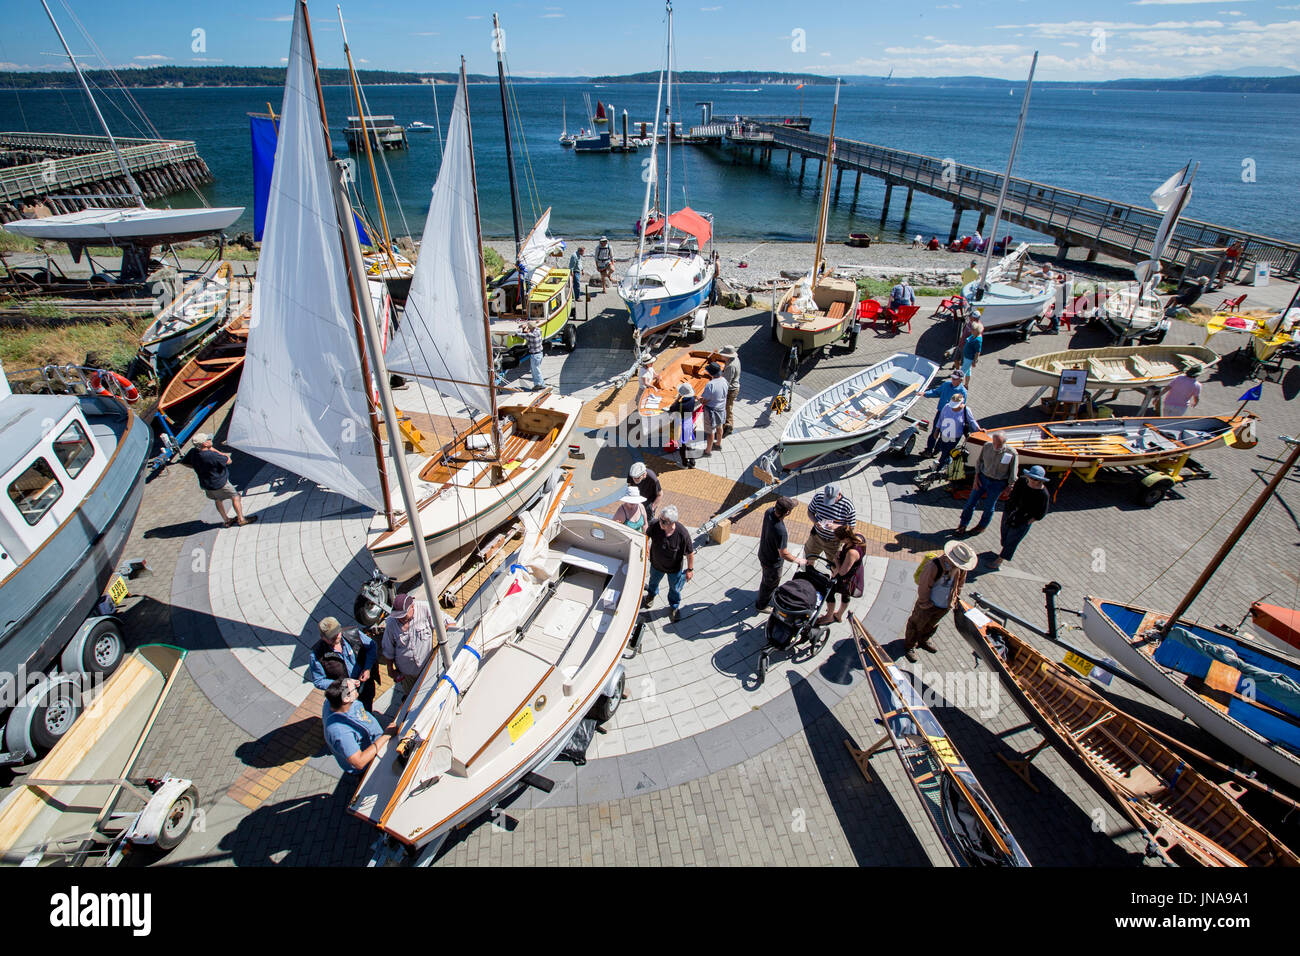 Port Townsend Pocket Yacht Palooza boat show at the Northwest Maritime Center. - Stock Image